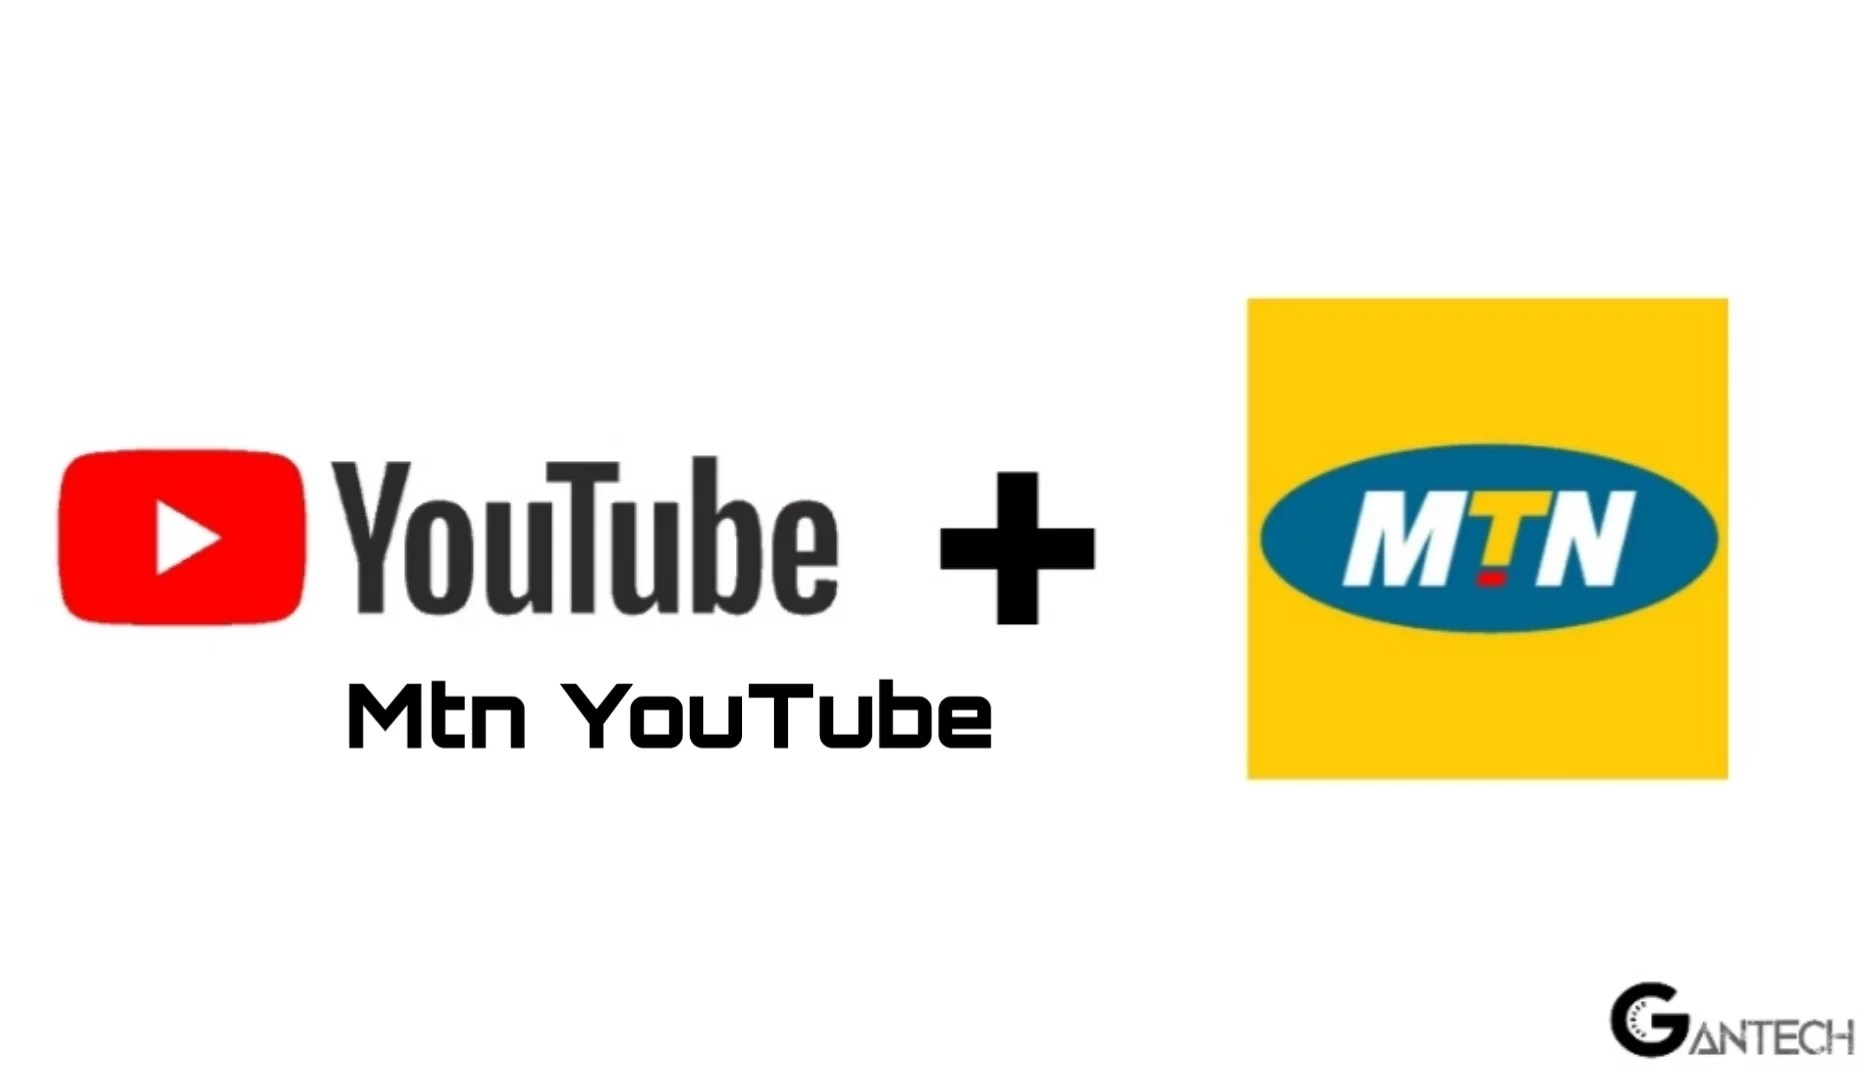 mtn youtube, Mtn YouTube: Unlimited data cheat for all apps and websites